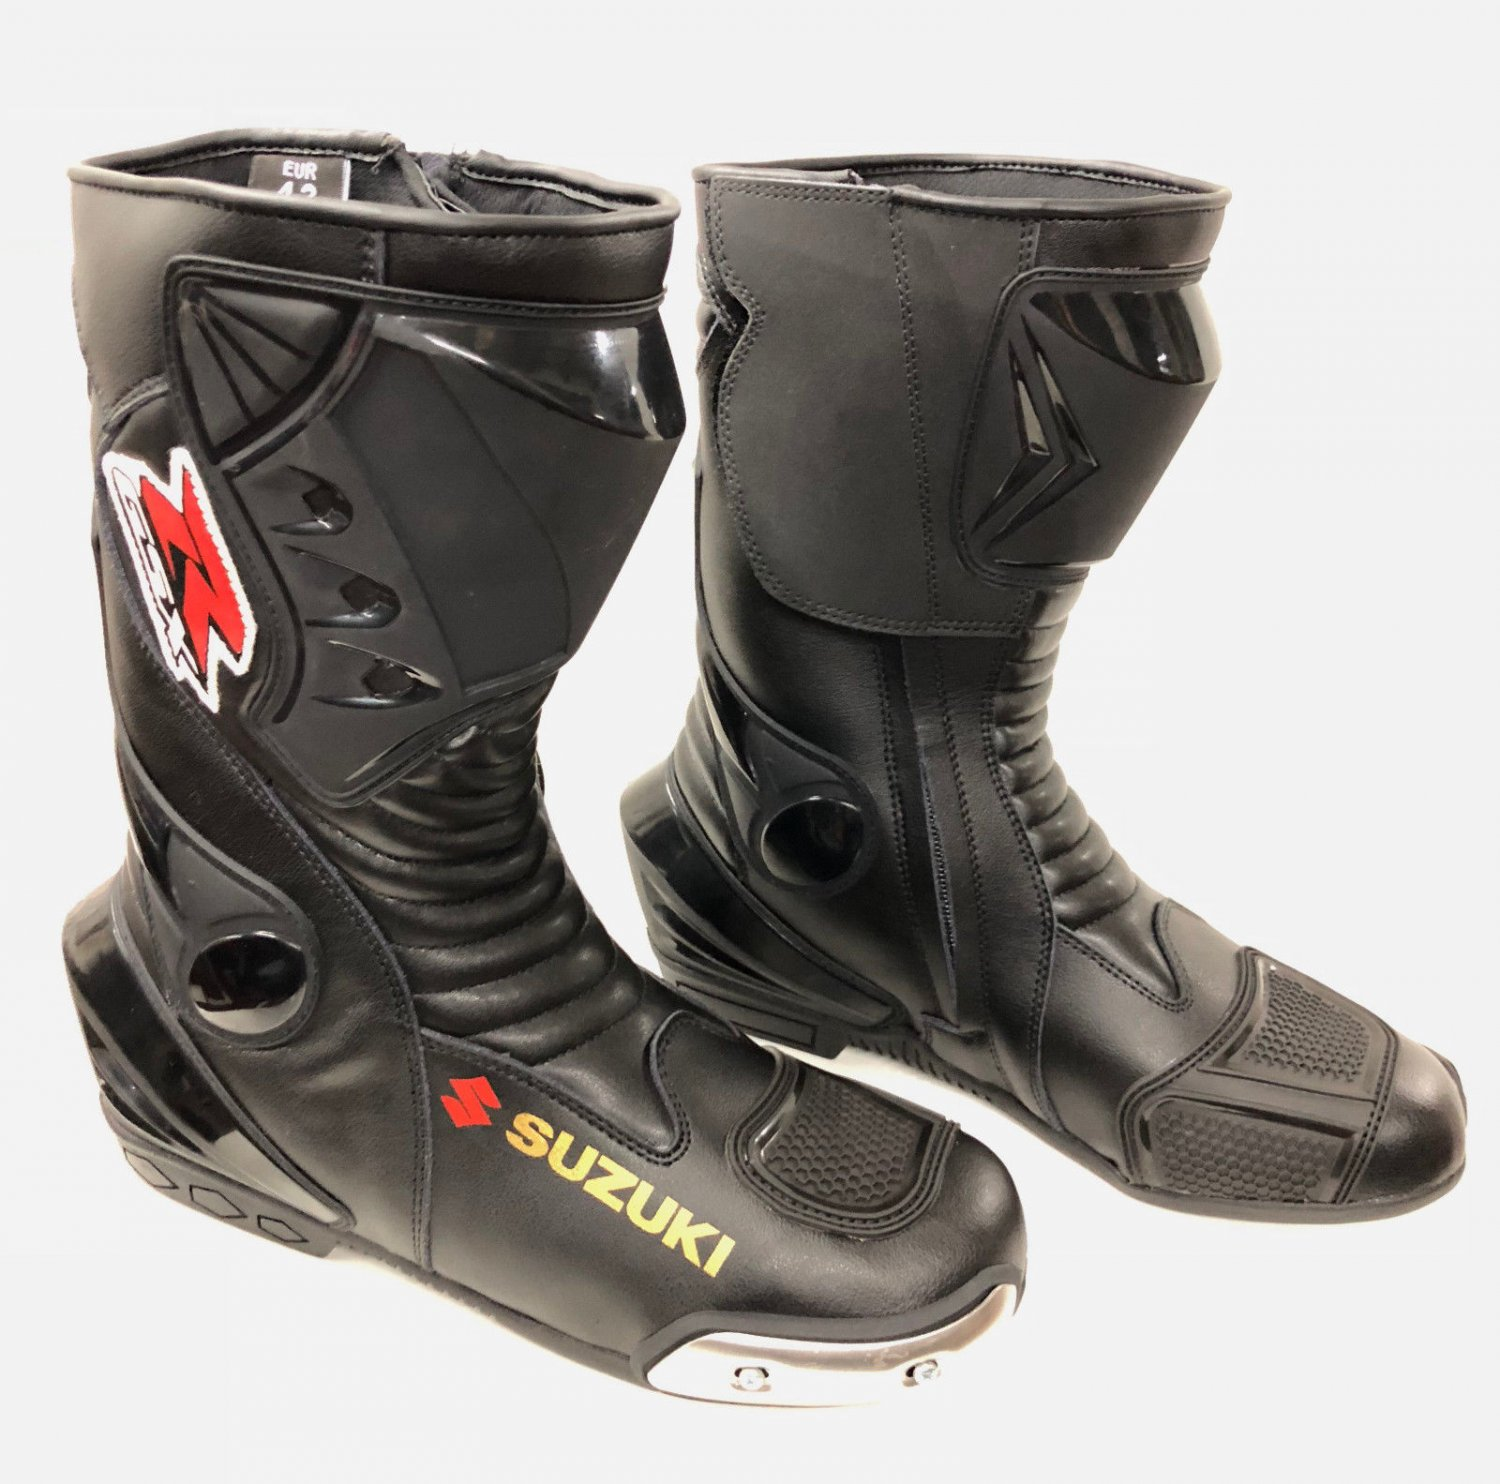 Suzuki Motorcycle Boots Riding Leather Boots All Size Available